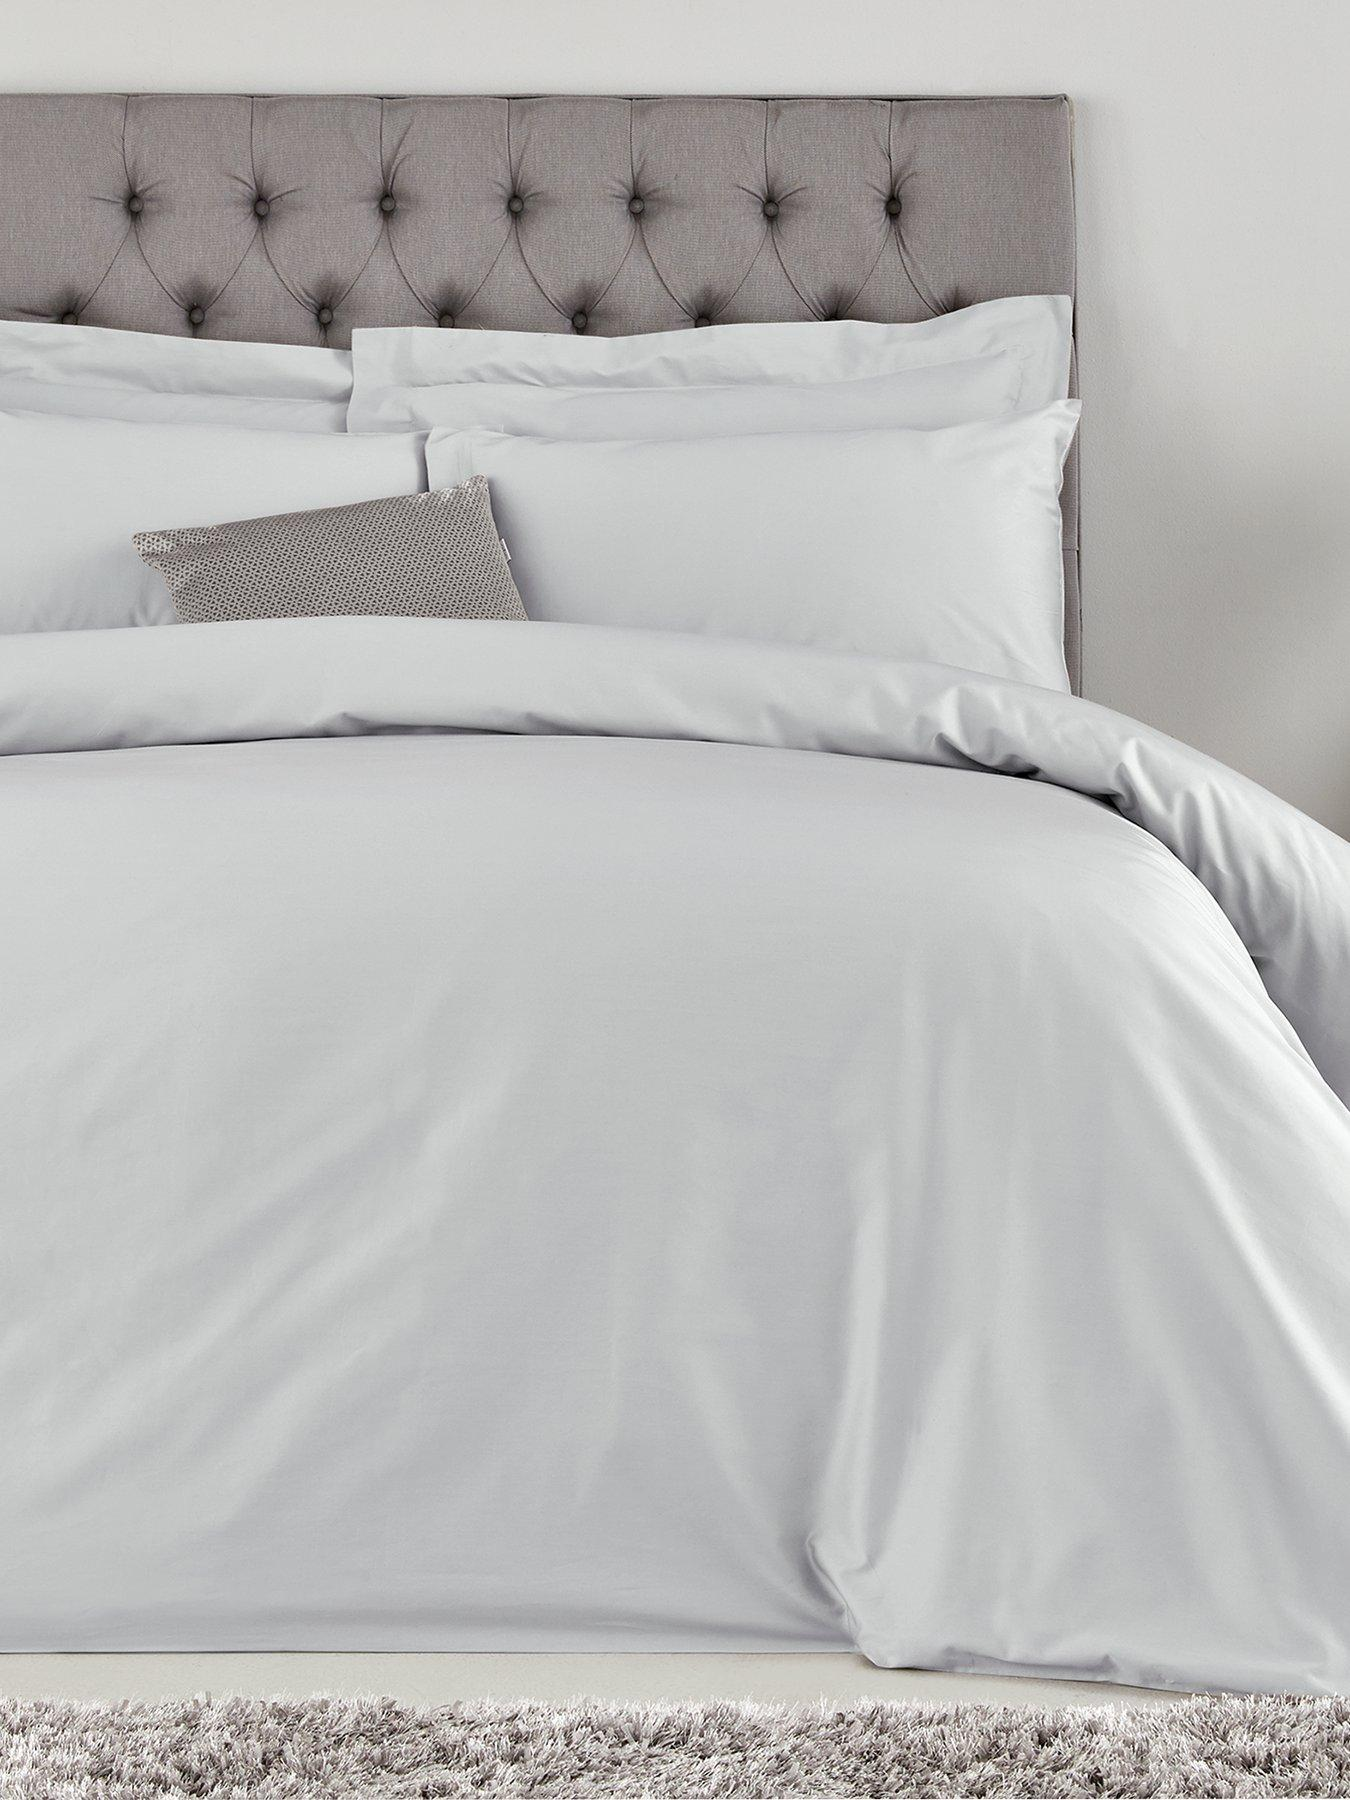 100/% Luxury Hotel Quality Cotton Duvet Cover Set White Cream 300 Thread Count